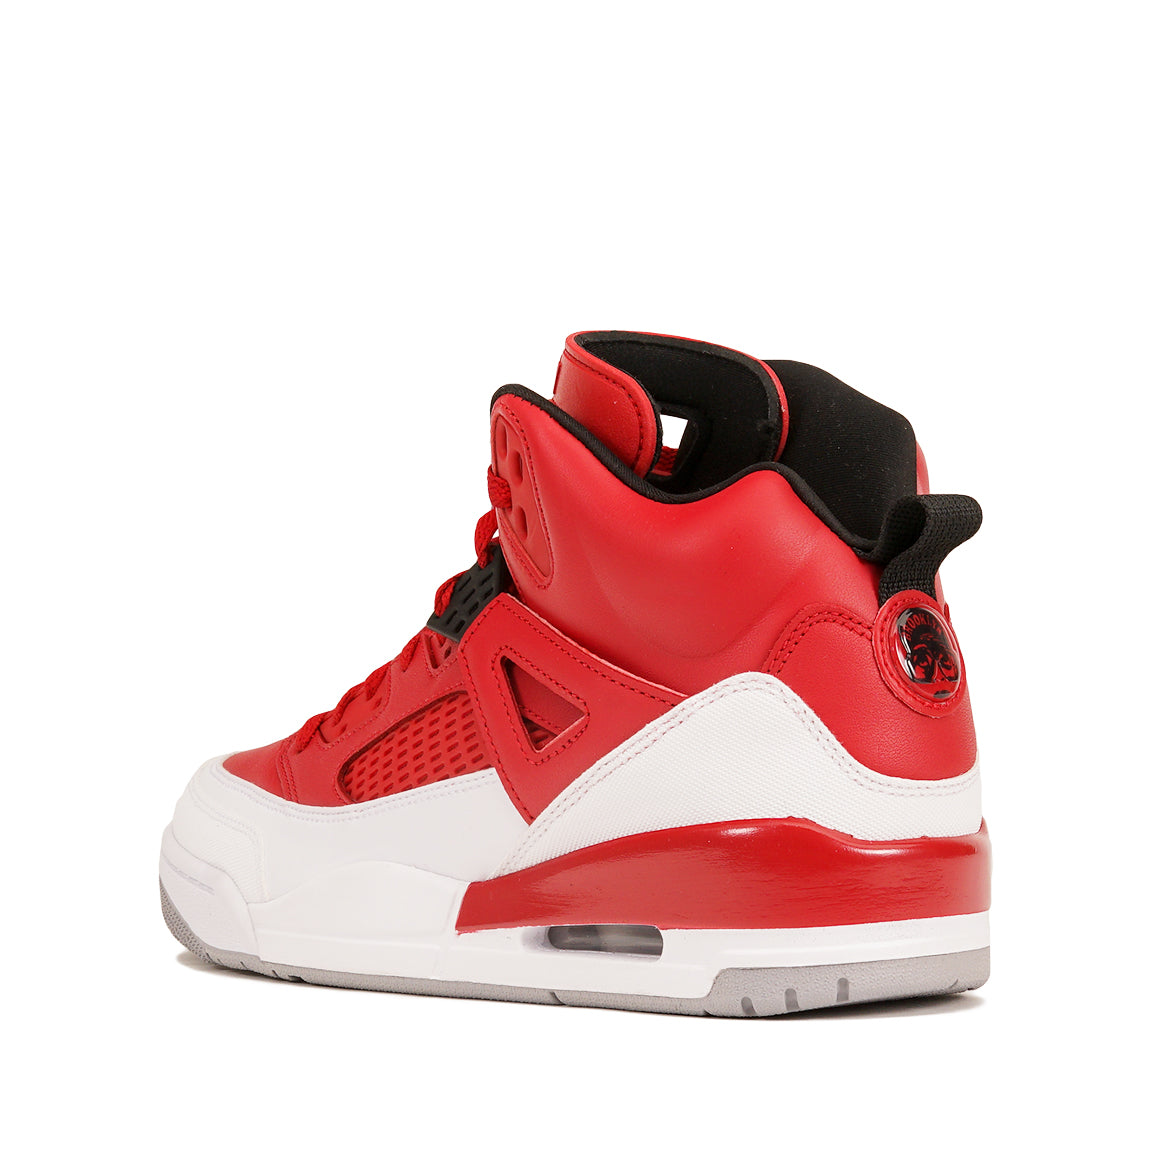 JORDAN SPIZIKE - GYM RED